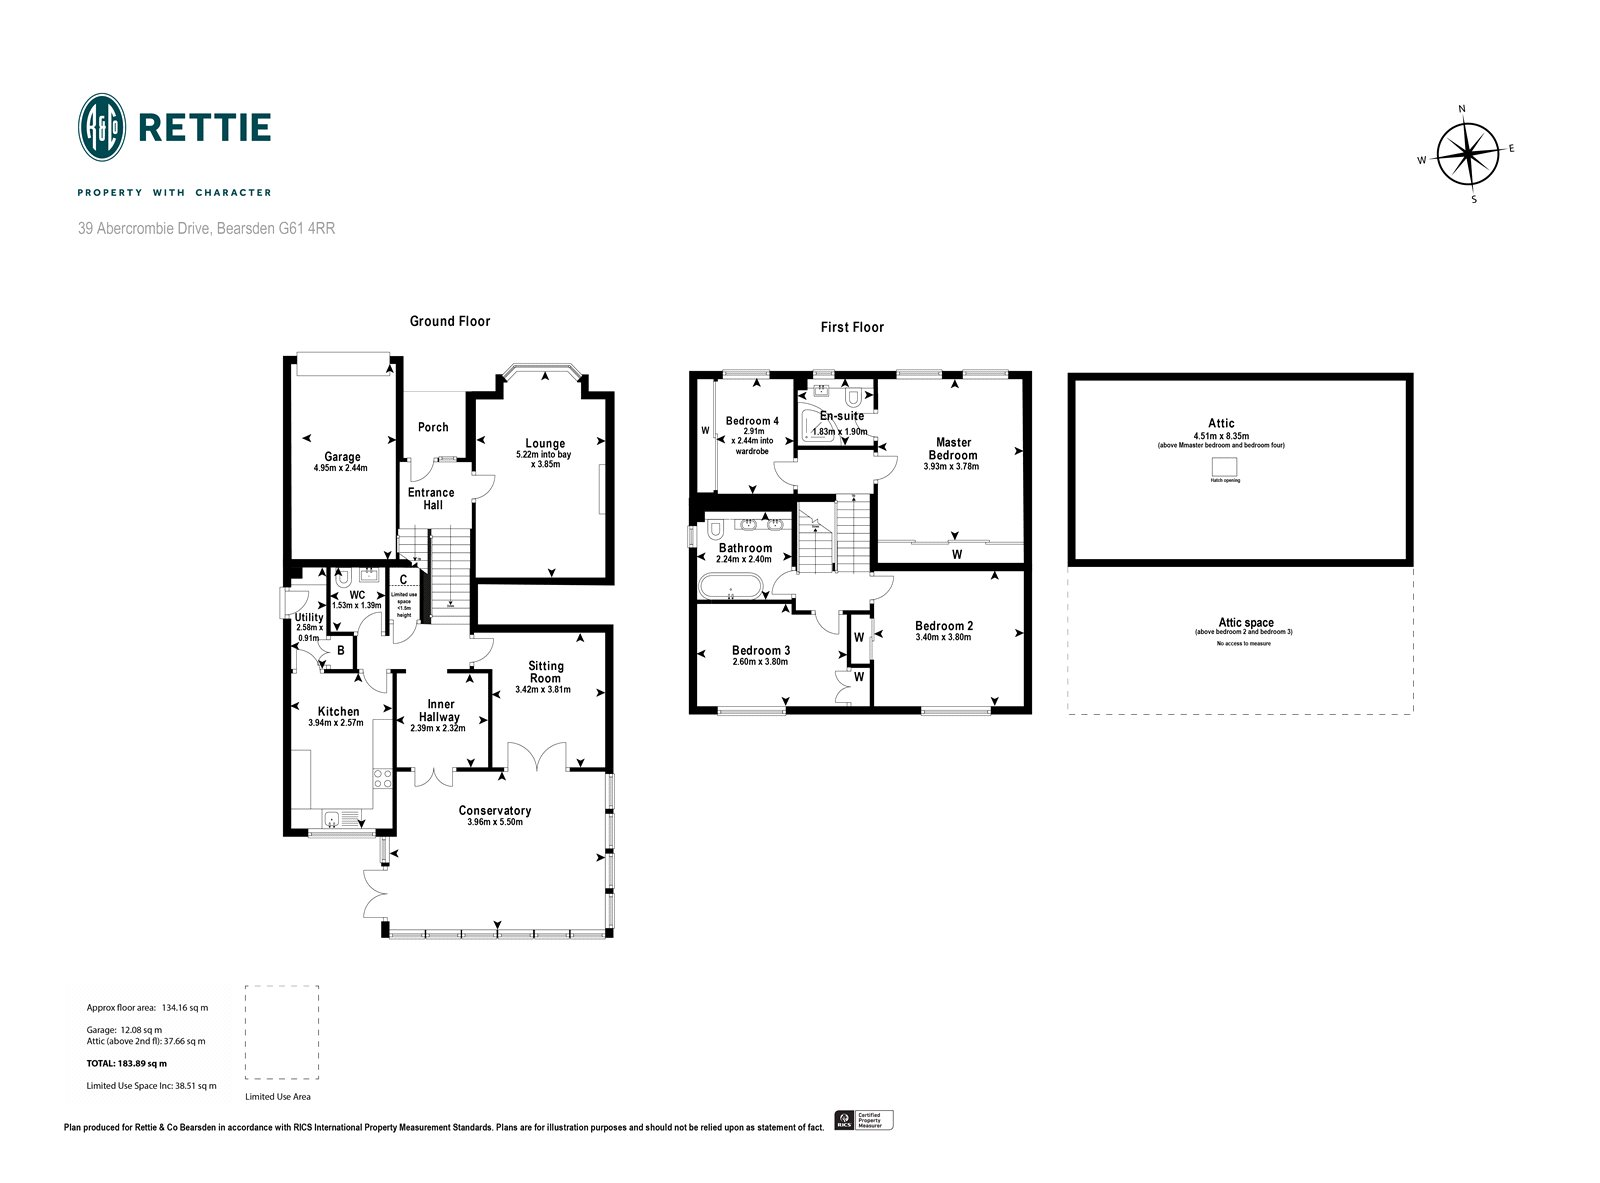 Floorplans for Abercrombie Drive, Bearsden, G61